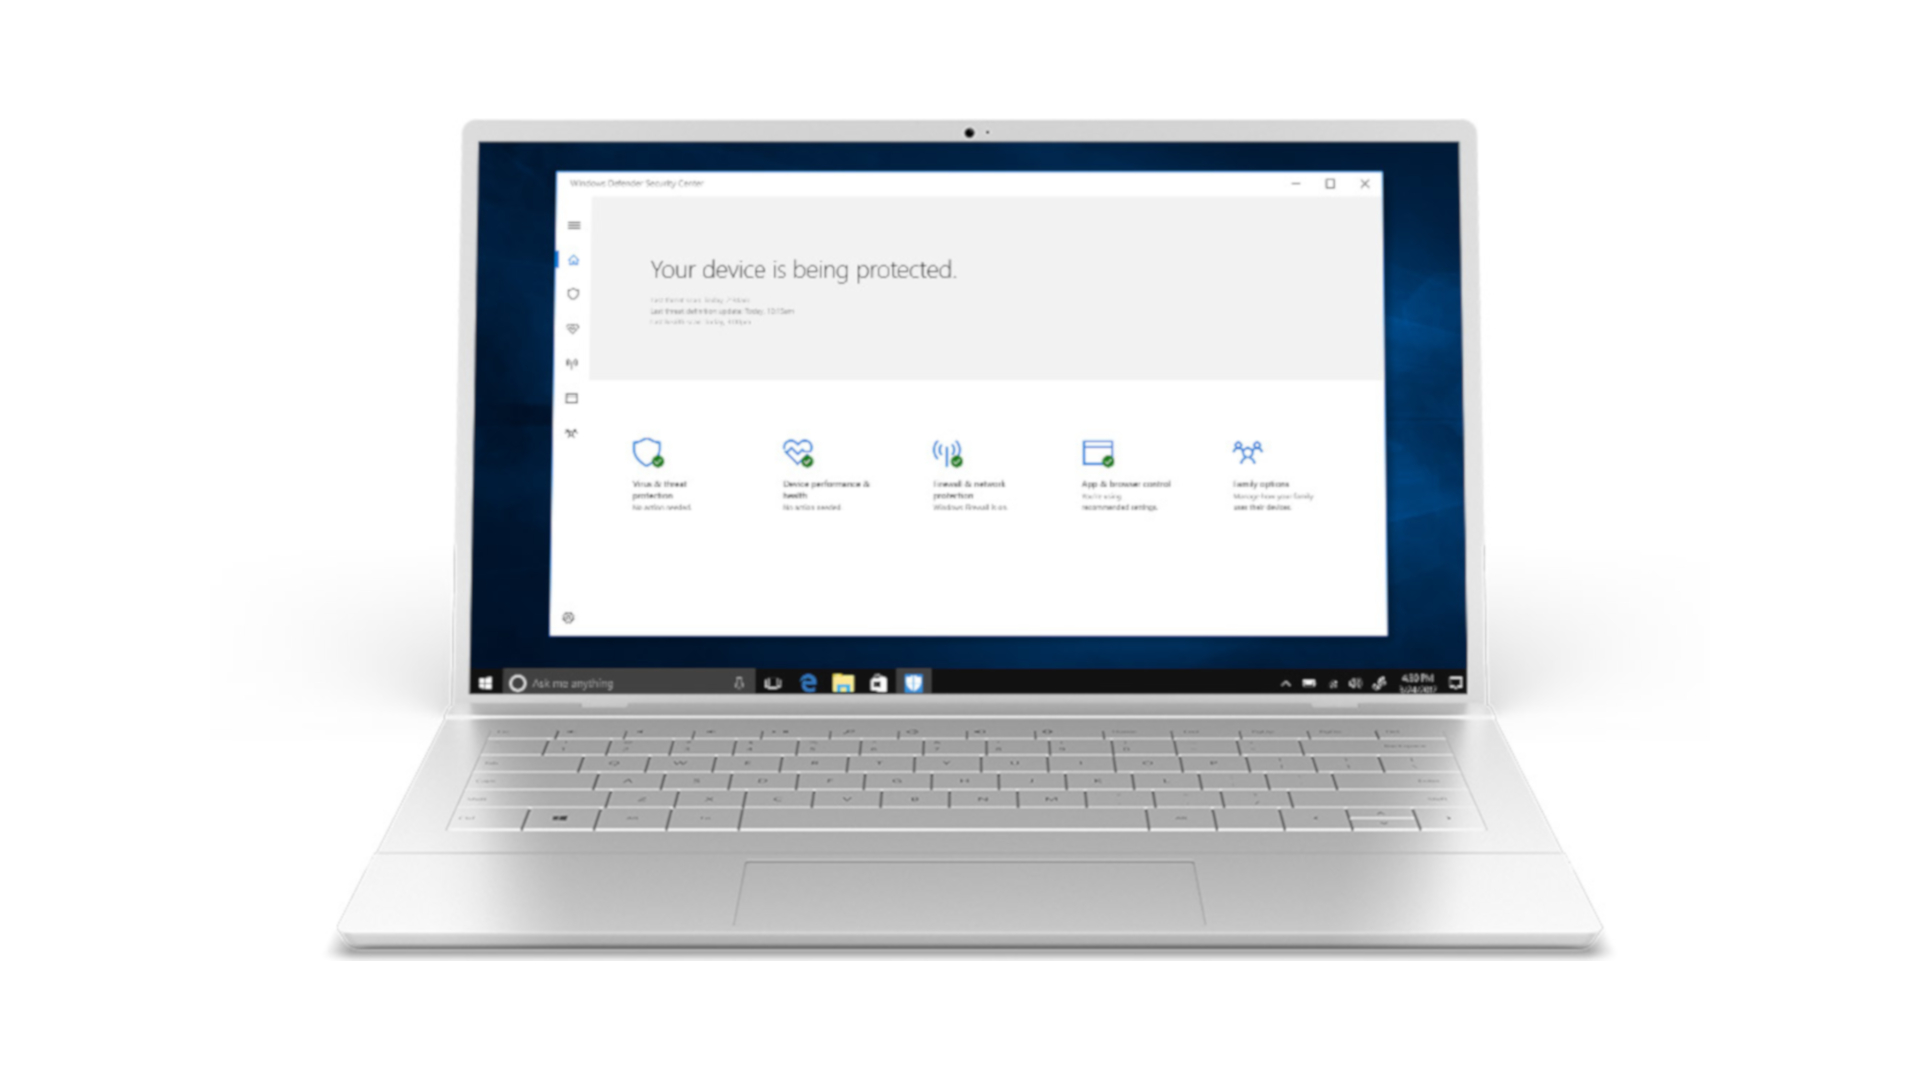 Windows 10 update breaks its built-in antivirus protection